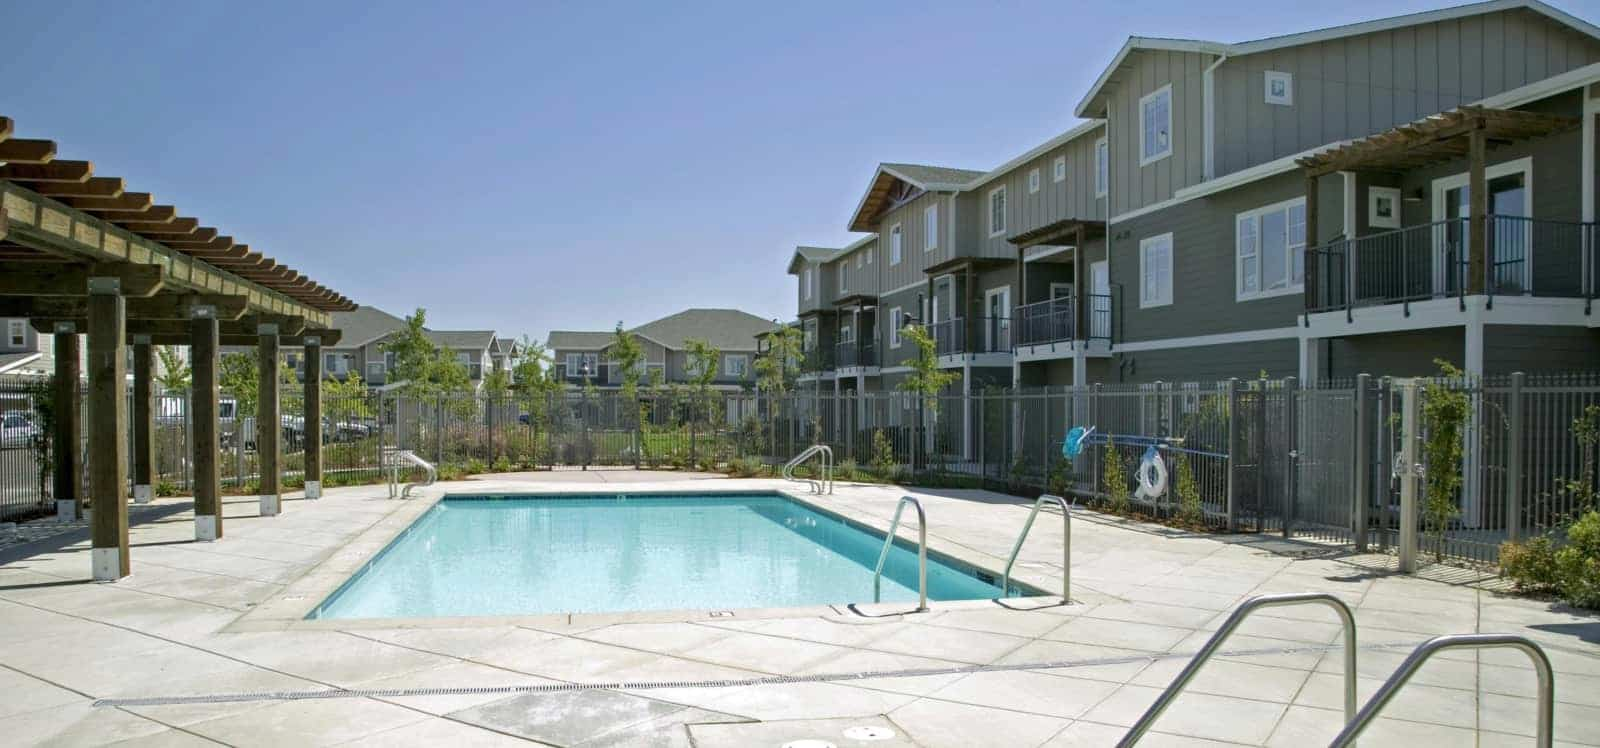 View of the pool area with the apartment buildings in the background.